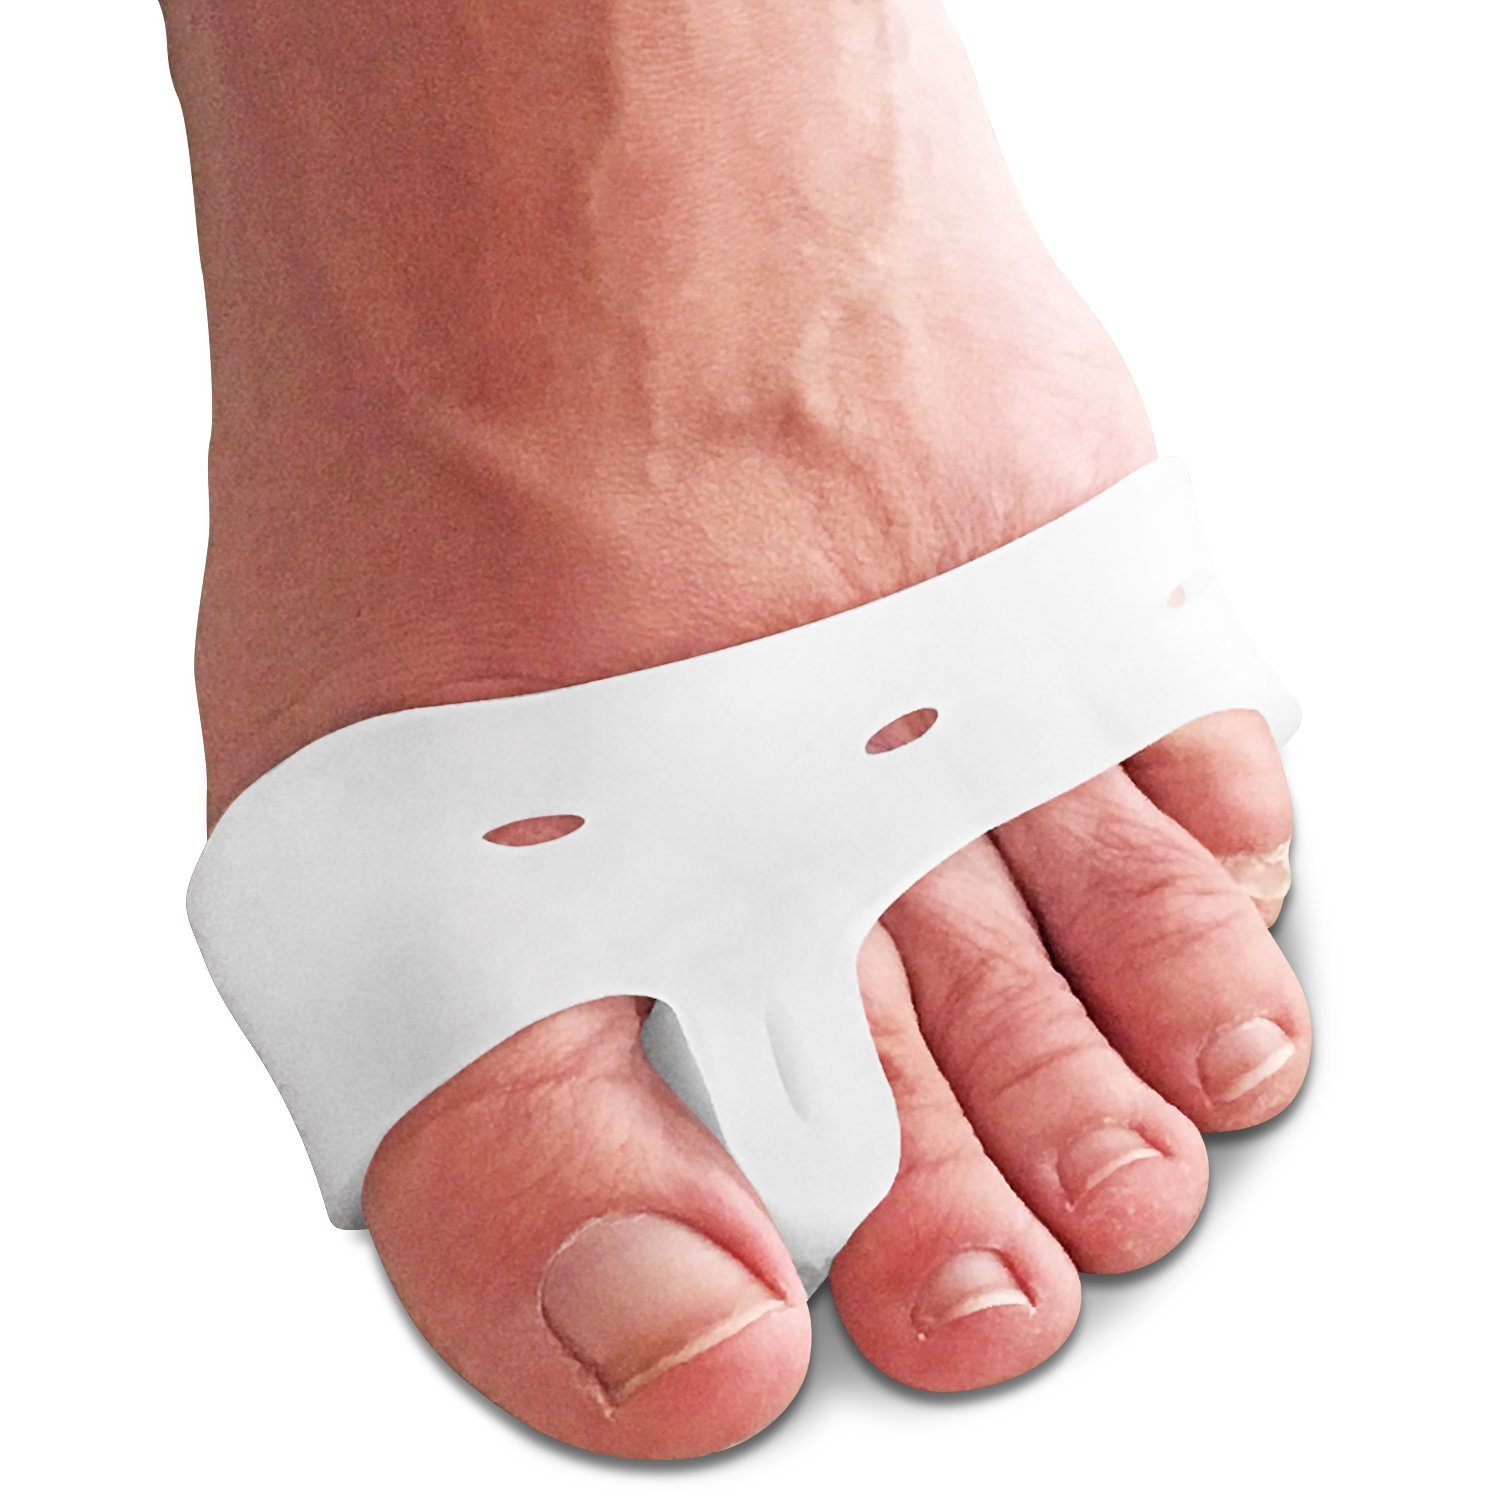 ... Separators Hammer Toe Straighteners Big Toe Relief Toe Spacers Set 1 Pair Gel Spreaders to Correct Toes in Shoes 1 Pair Bunion Protector Sleeves for Men ...